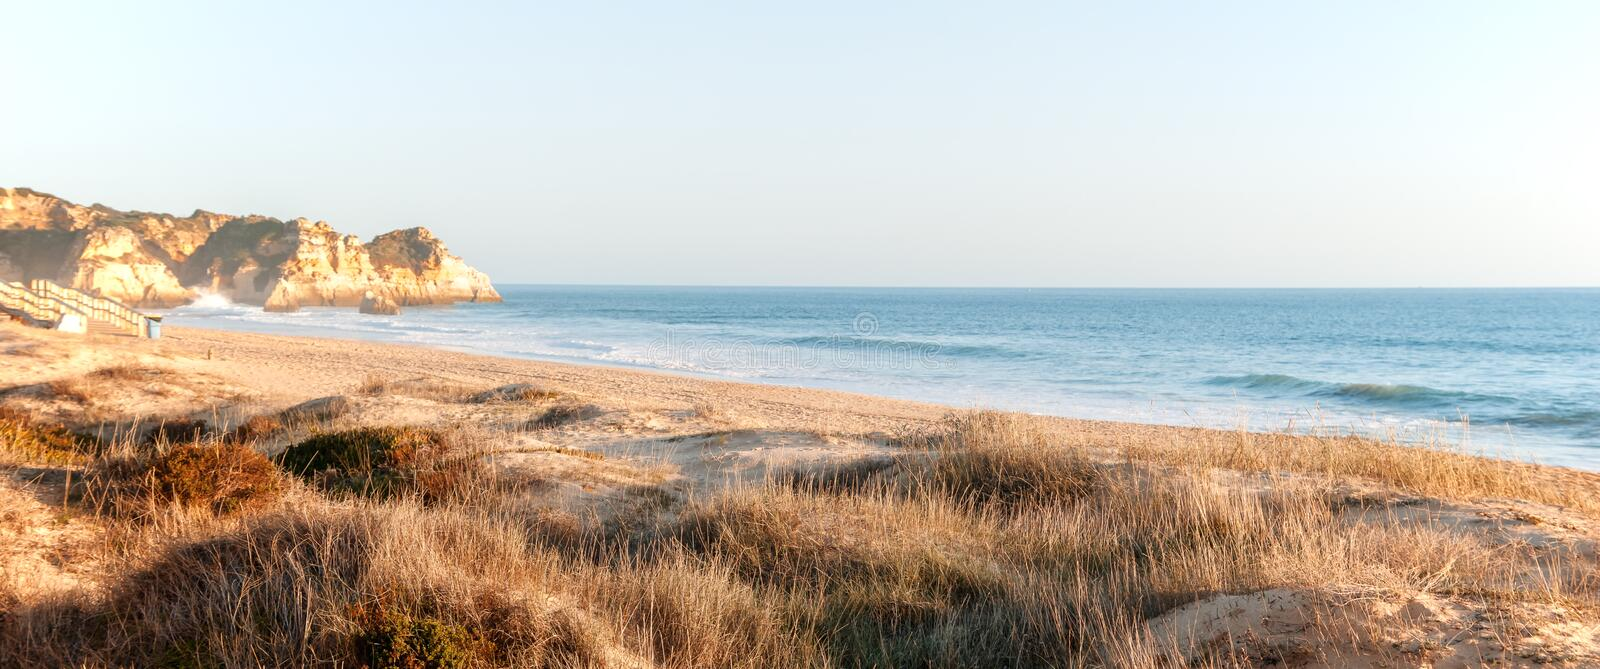 Beautiful seascape in pastel tones, sand dunes and seashore, pa stock photos